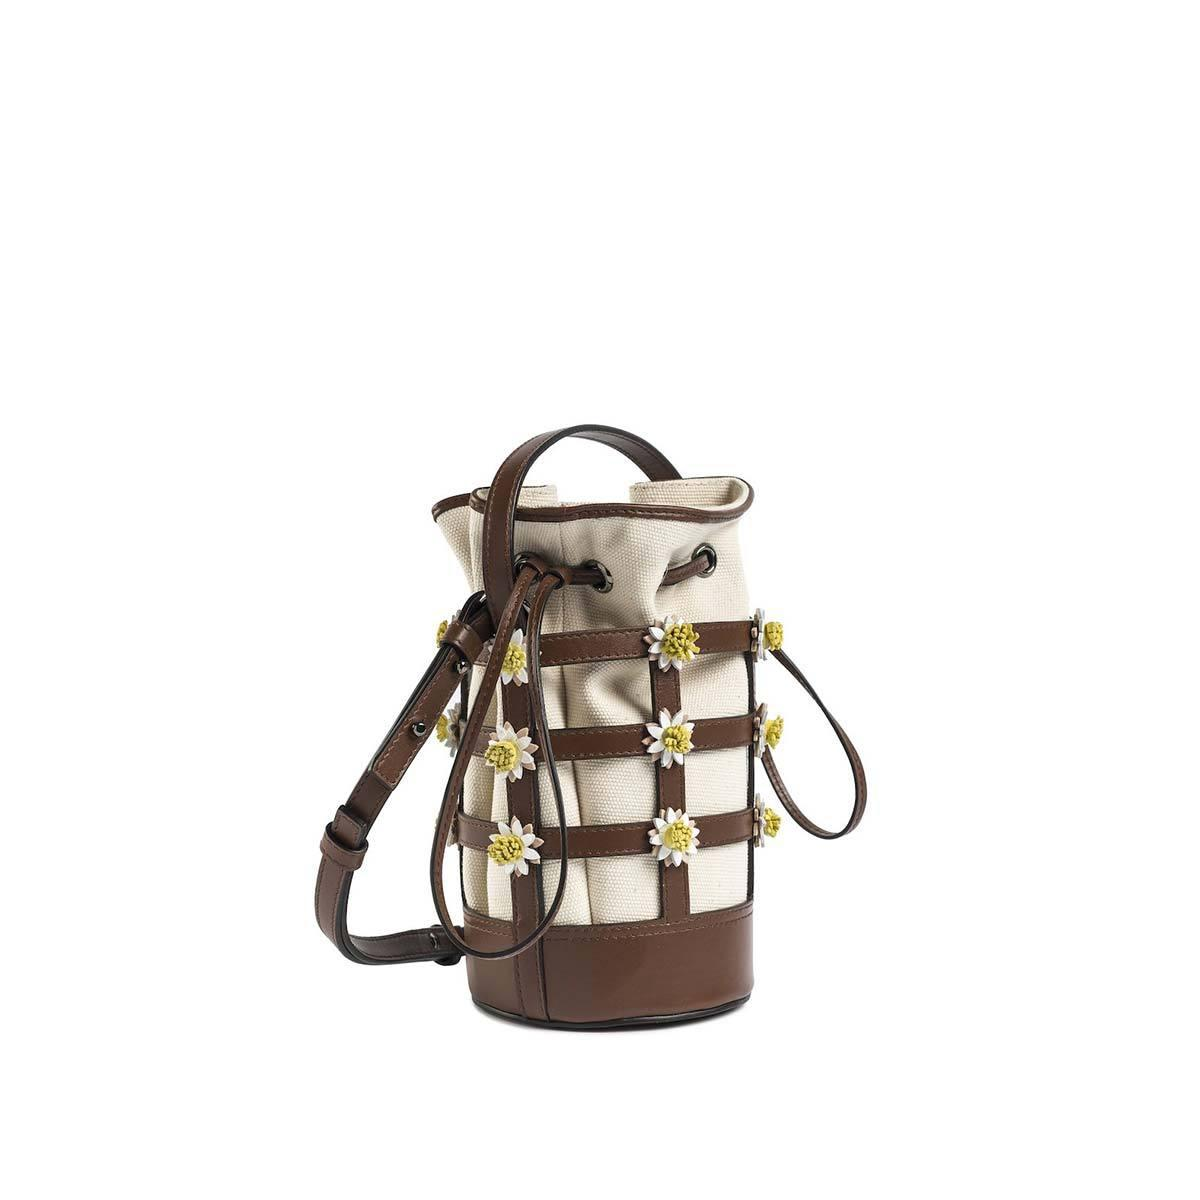 Miss Daisy Bucket Bag with Canvas Pouch - Brown Nappa 1